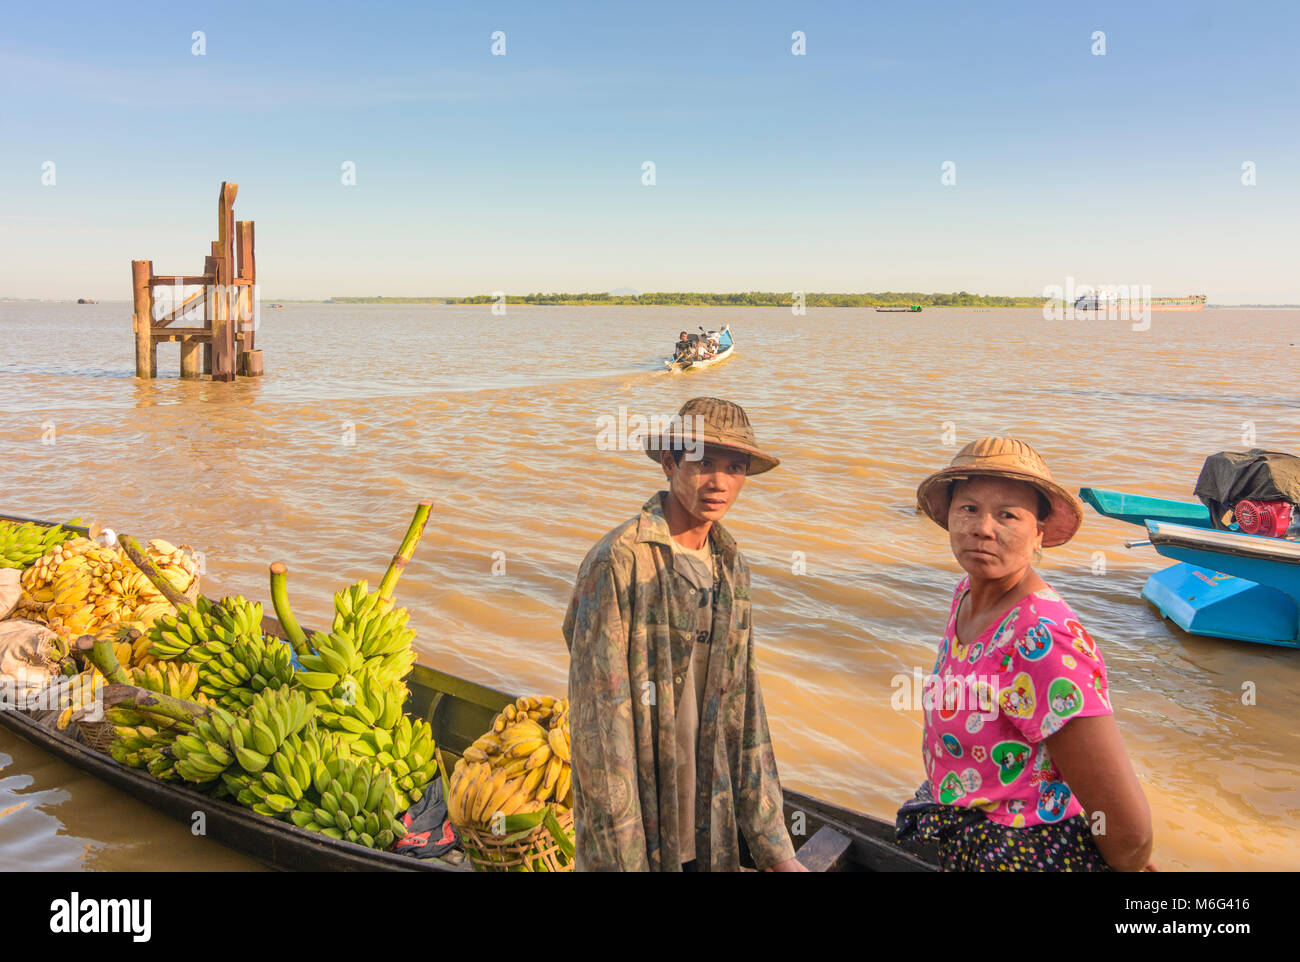 Mawlamyine (Mawlamyaing, Moulmein): ferry boat, banana cargo boat, Thanlwin (Salween) River, , Mon State, Myanmar Stock Photo